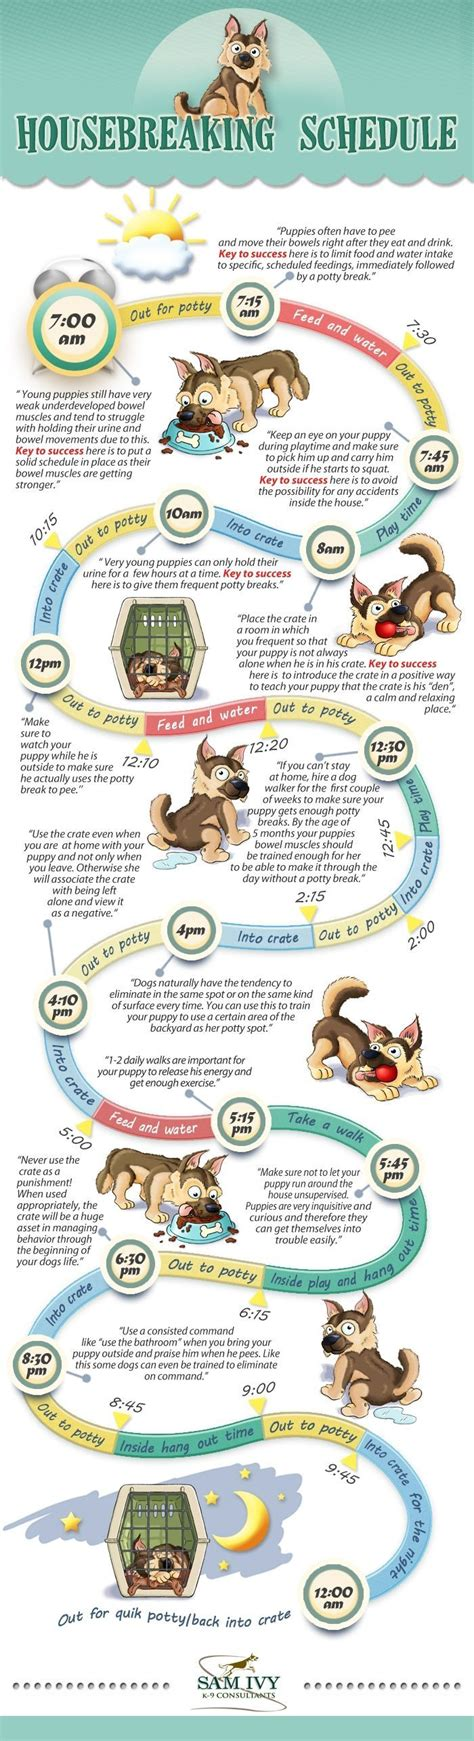 puppy schedule 25 best ideas about puppy schedule on puppy care puppy schedule